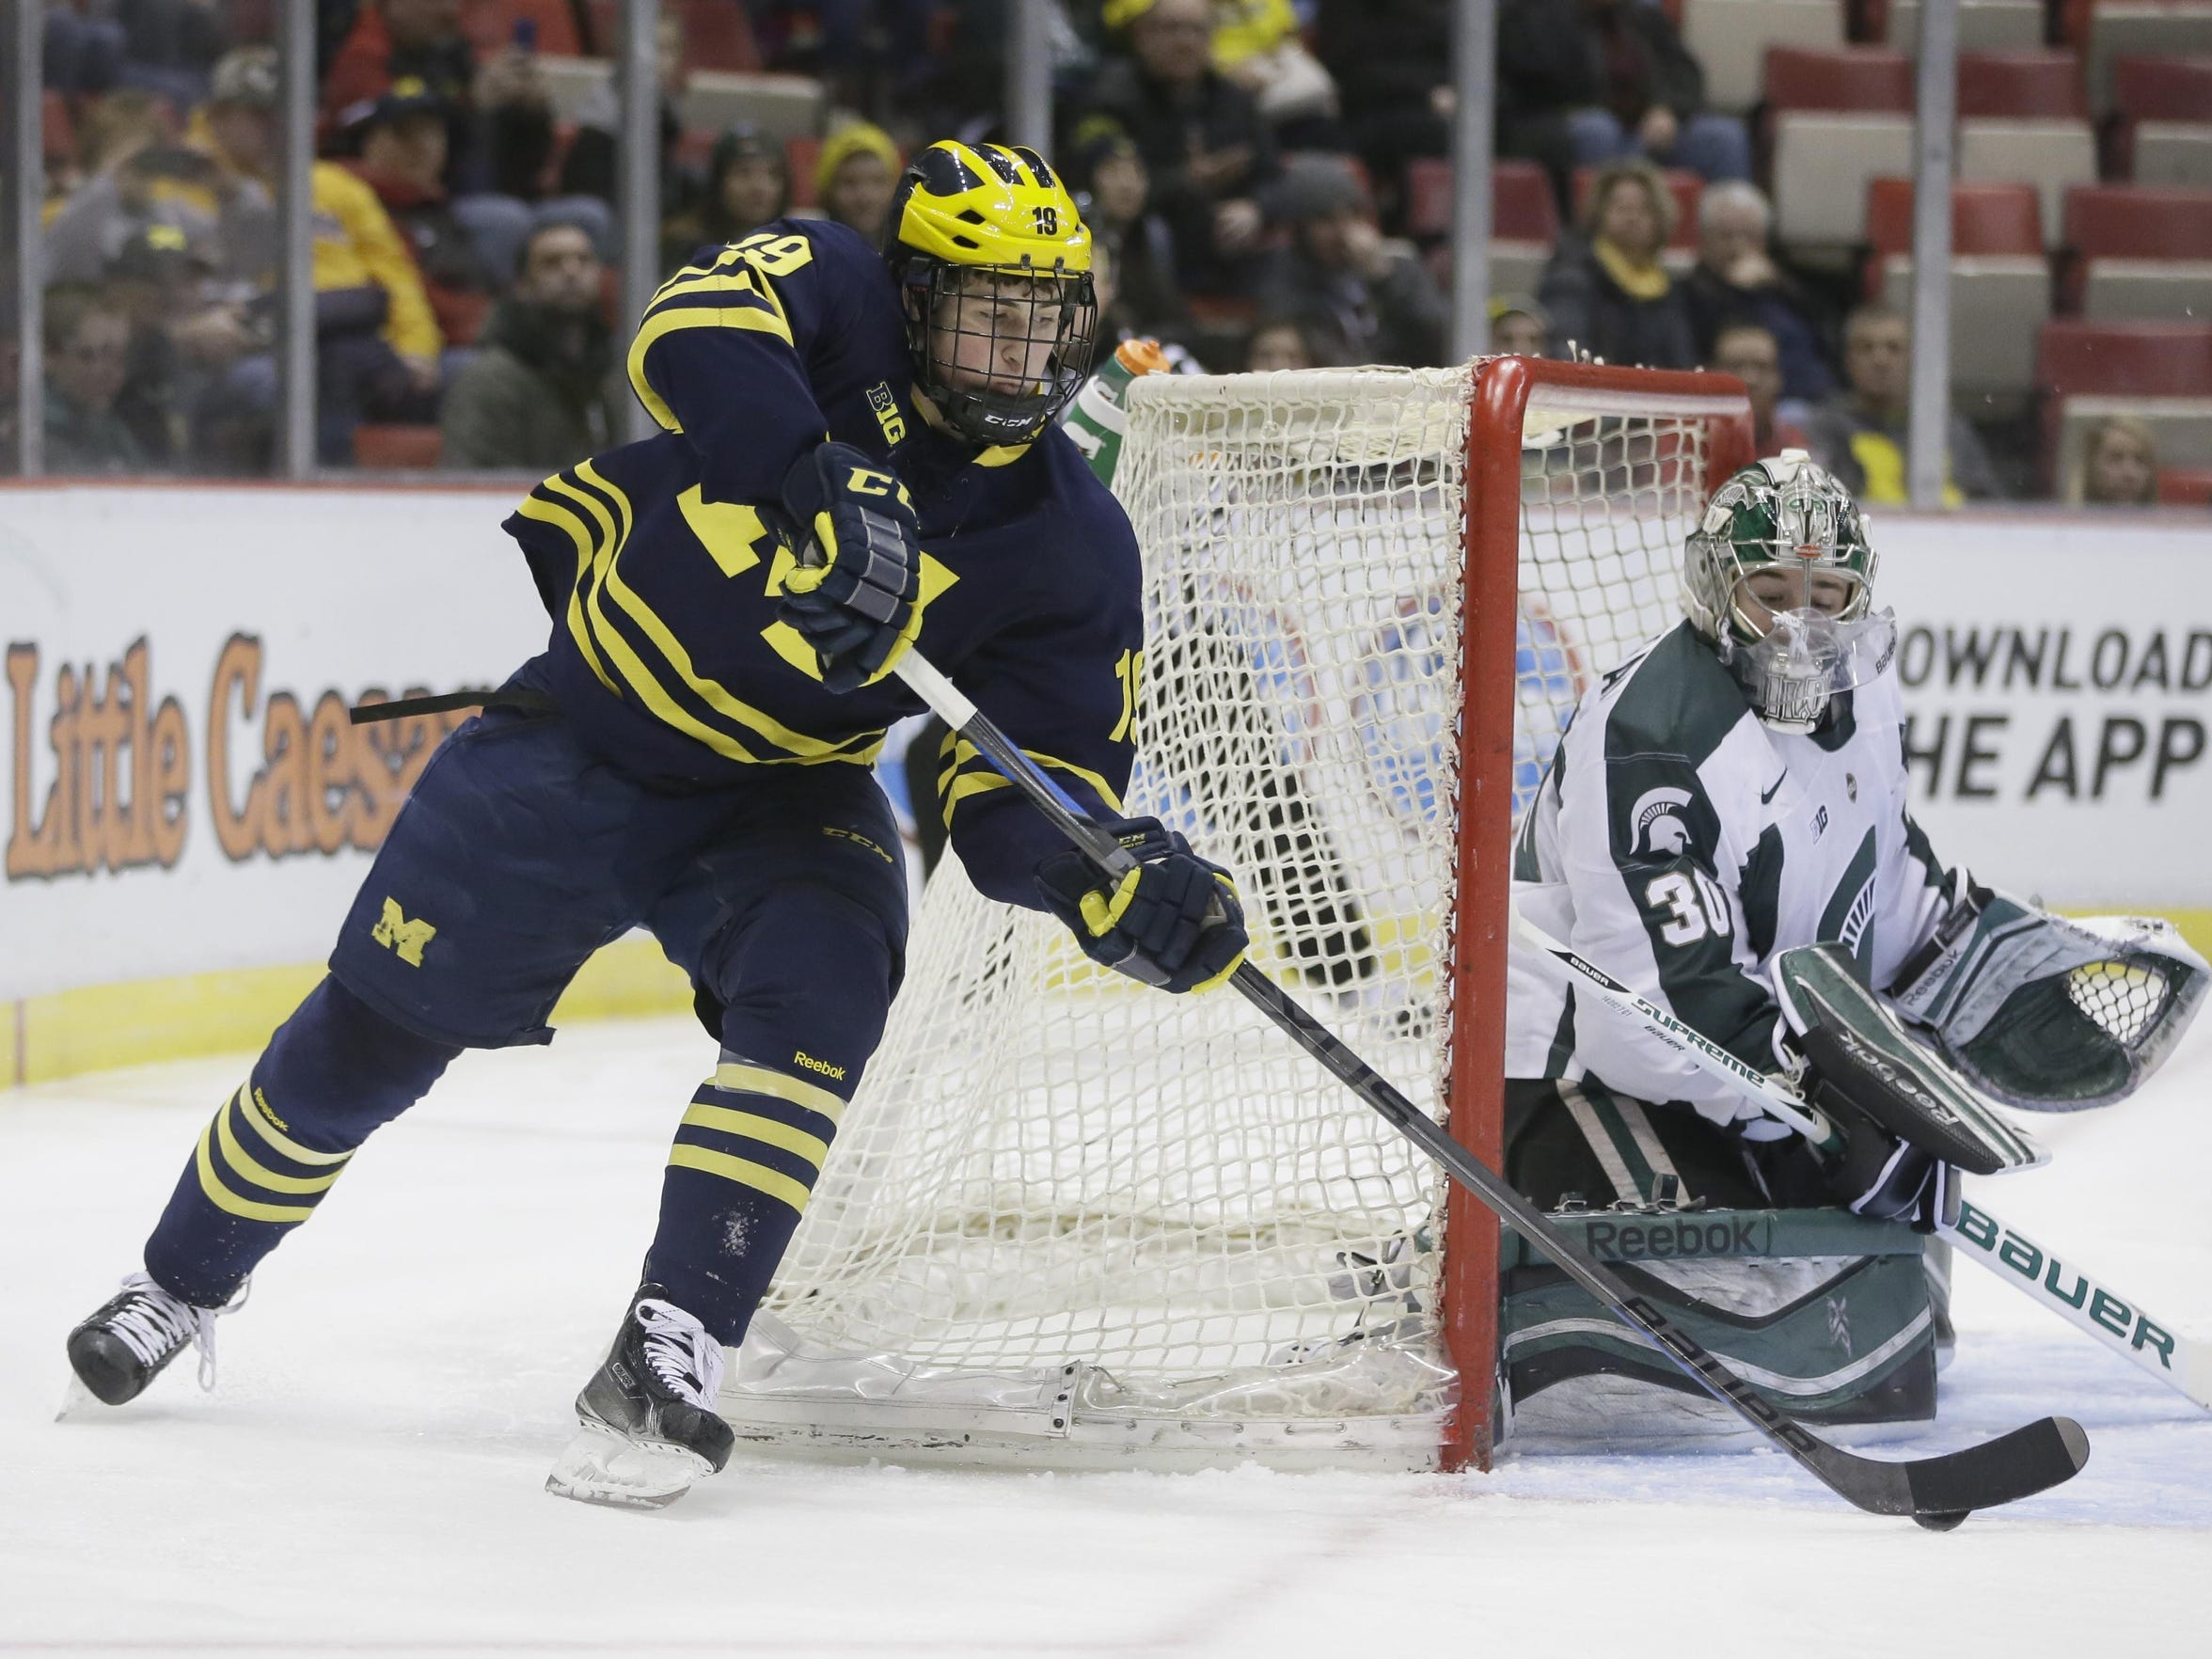 In one season at Michigan, Larkin put up 15 goals and